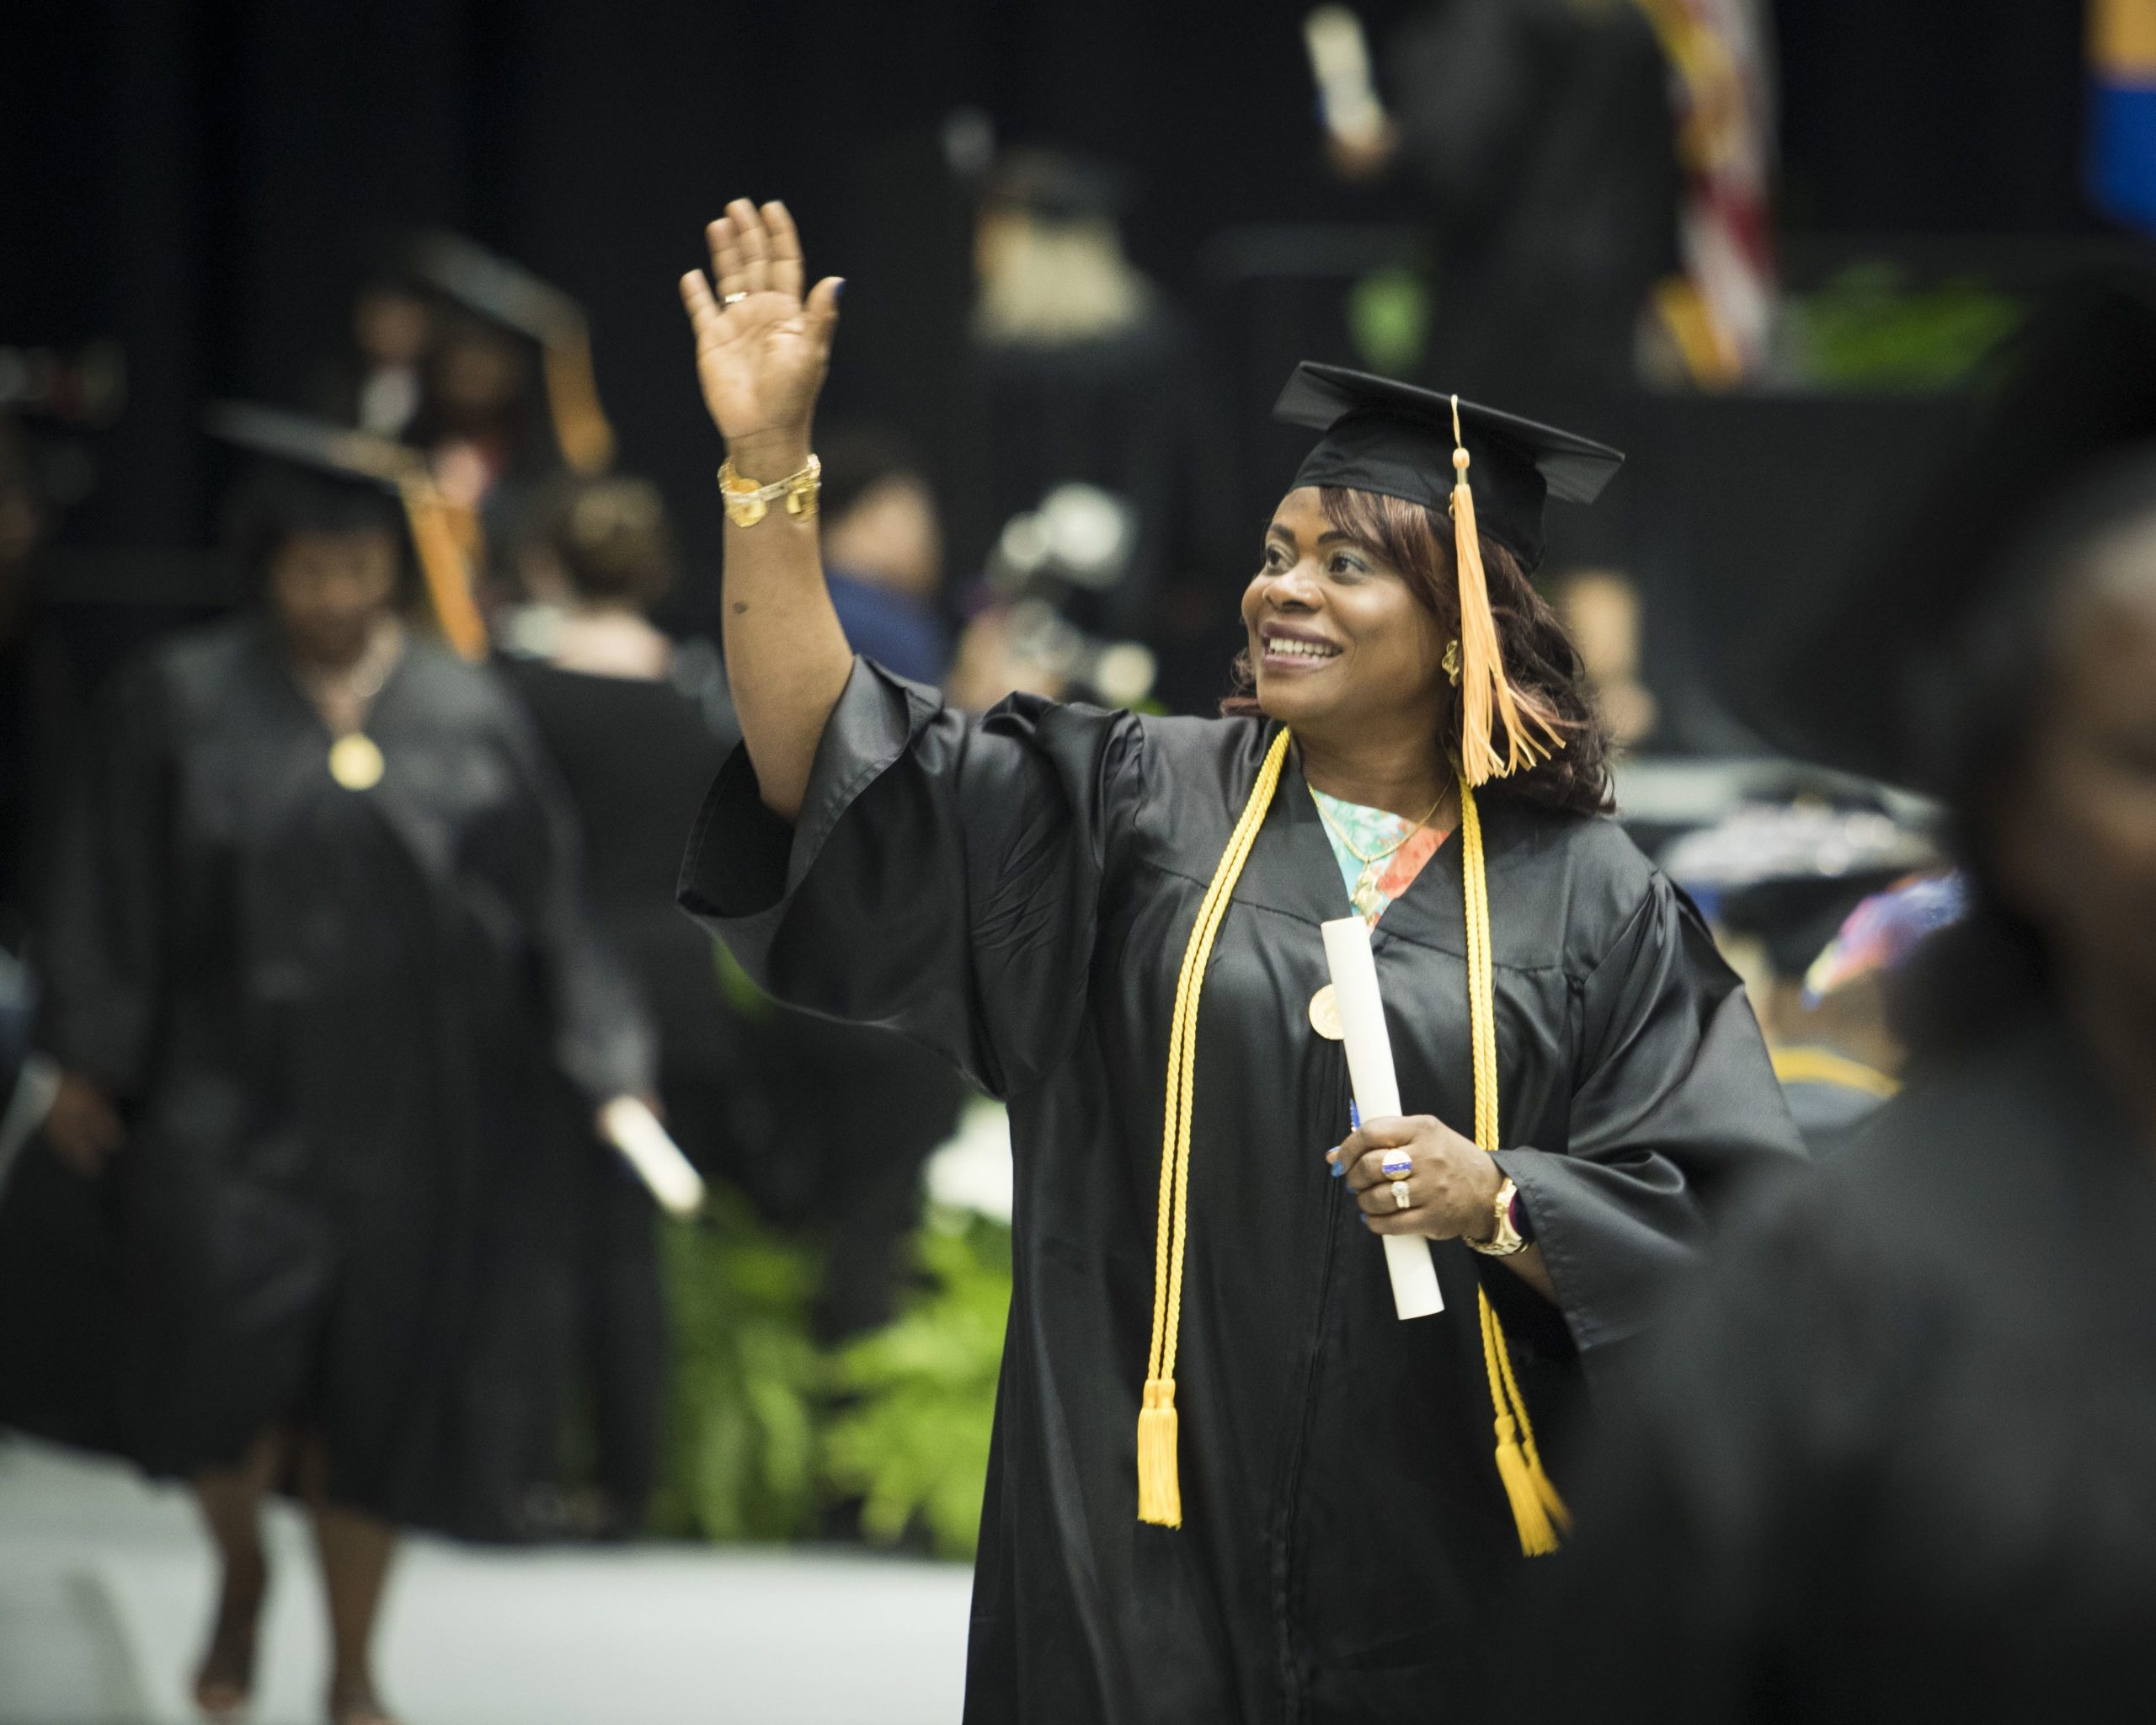 student waving at her family after walking across the stage at UWG's graduation ceremony